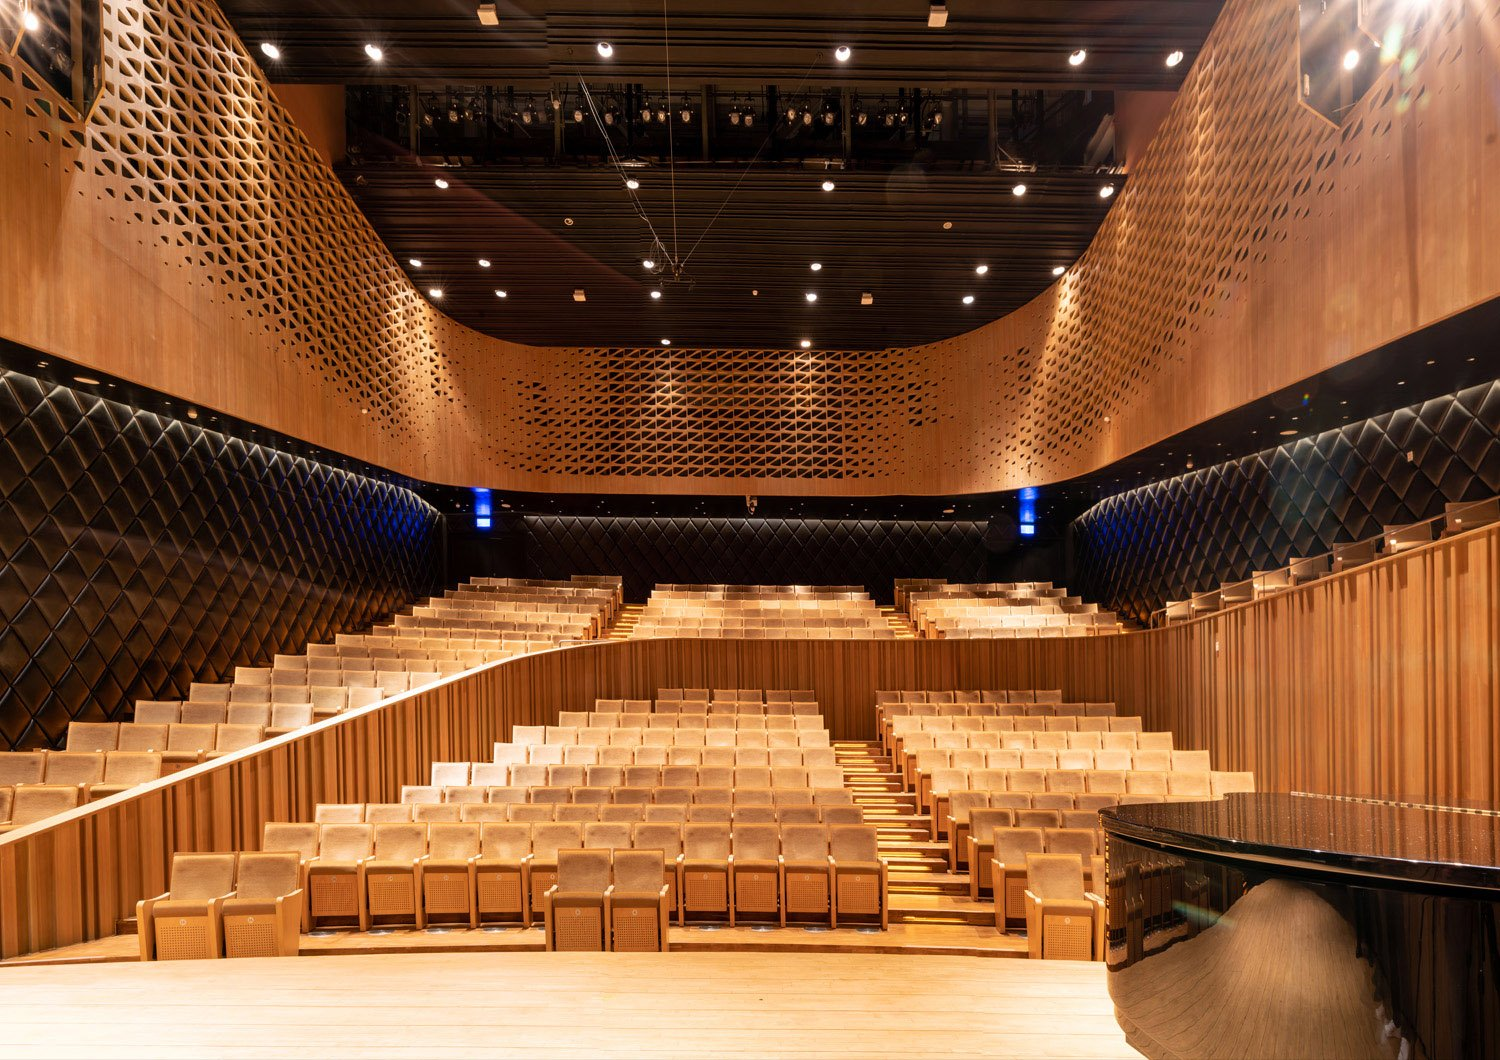 The 434-seat Recital Hall has the most intimate atmosphere of the four. With its asymmetrical composition and seating across two levels. Sytze Boonstra